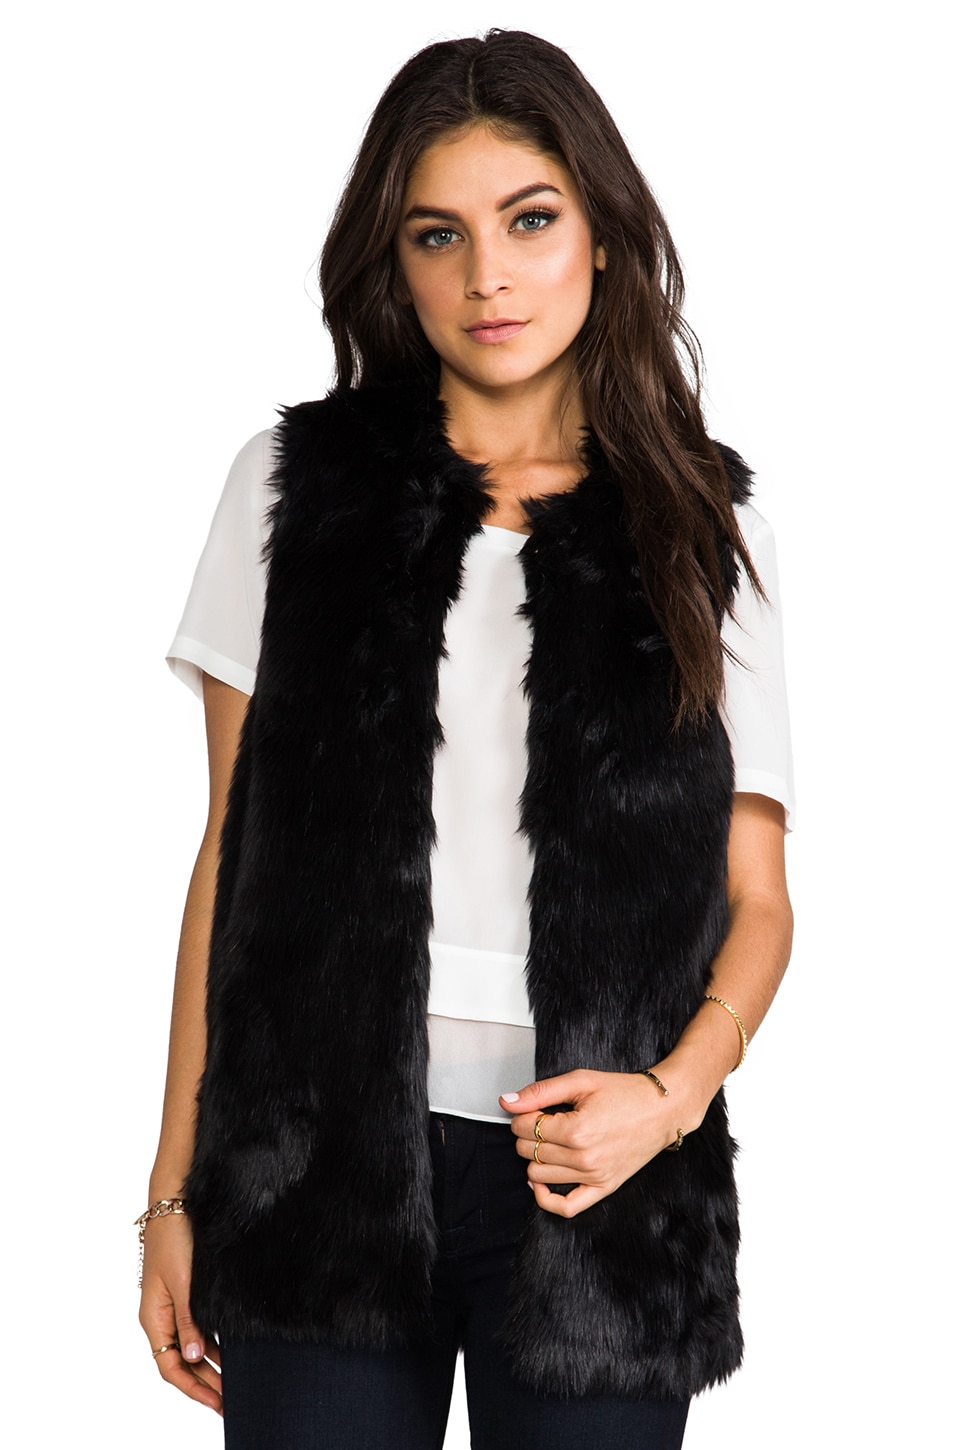 Juicy Couture Bear Faux Fur Vest in Pitch Black